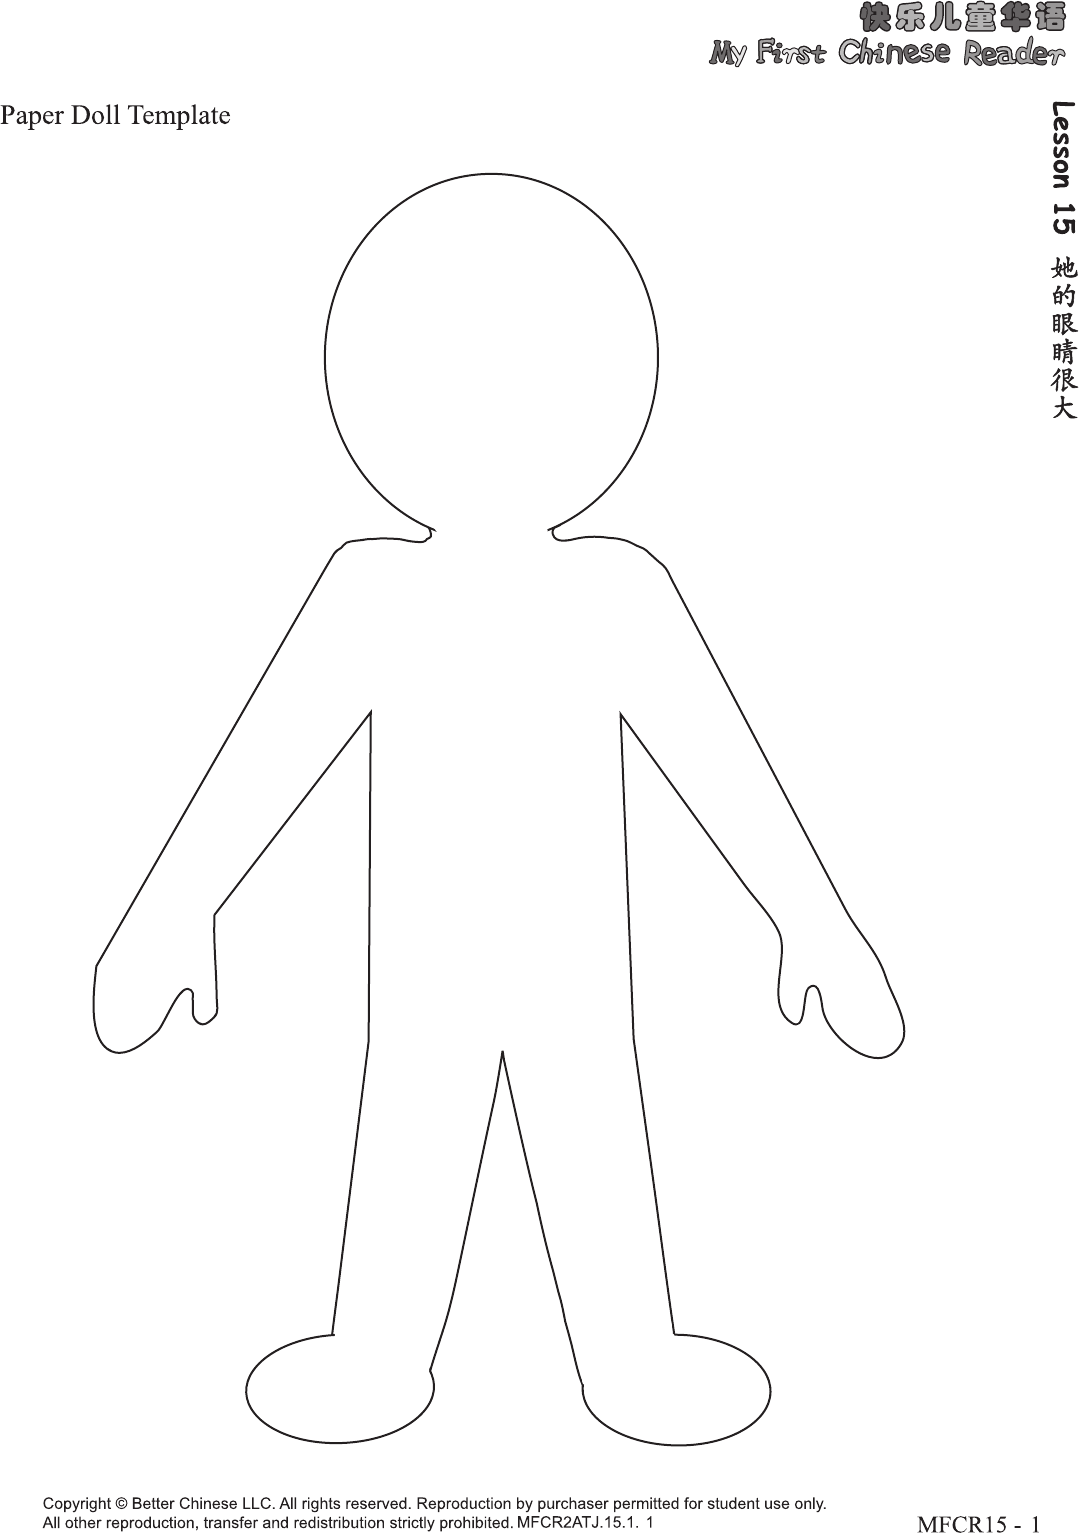 photo about Printable Paper Dolls Templates named Printable Paper Doll Template Totally free Boy Female Printables Hair